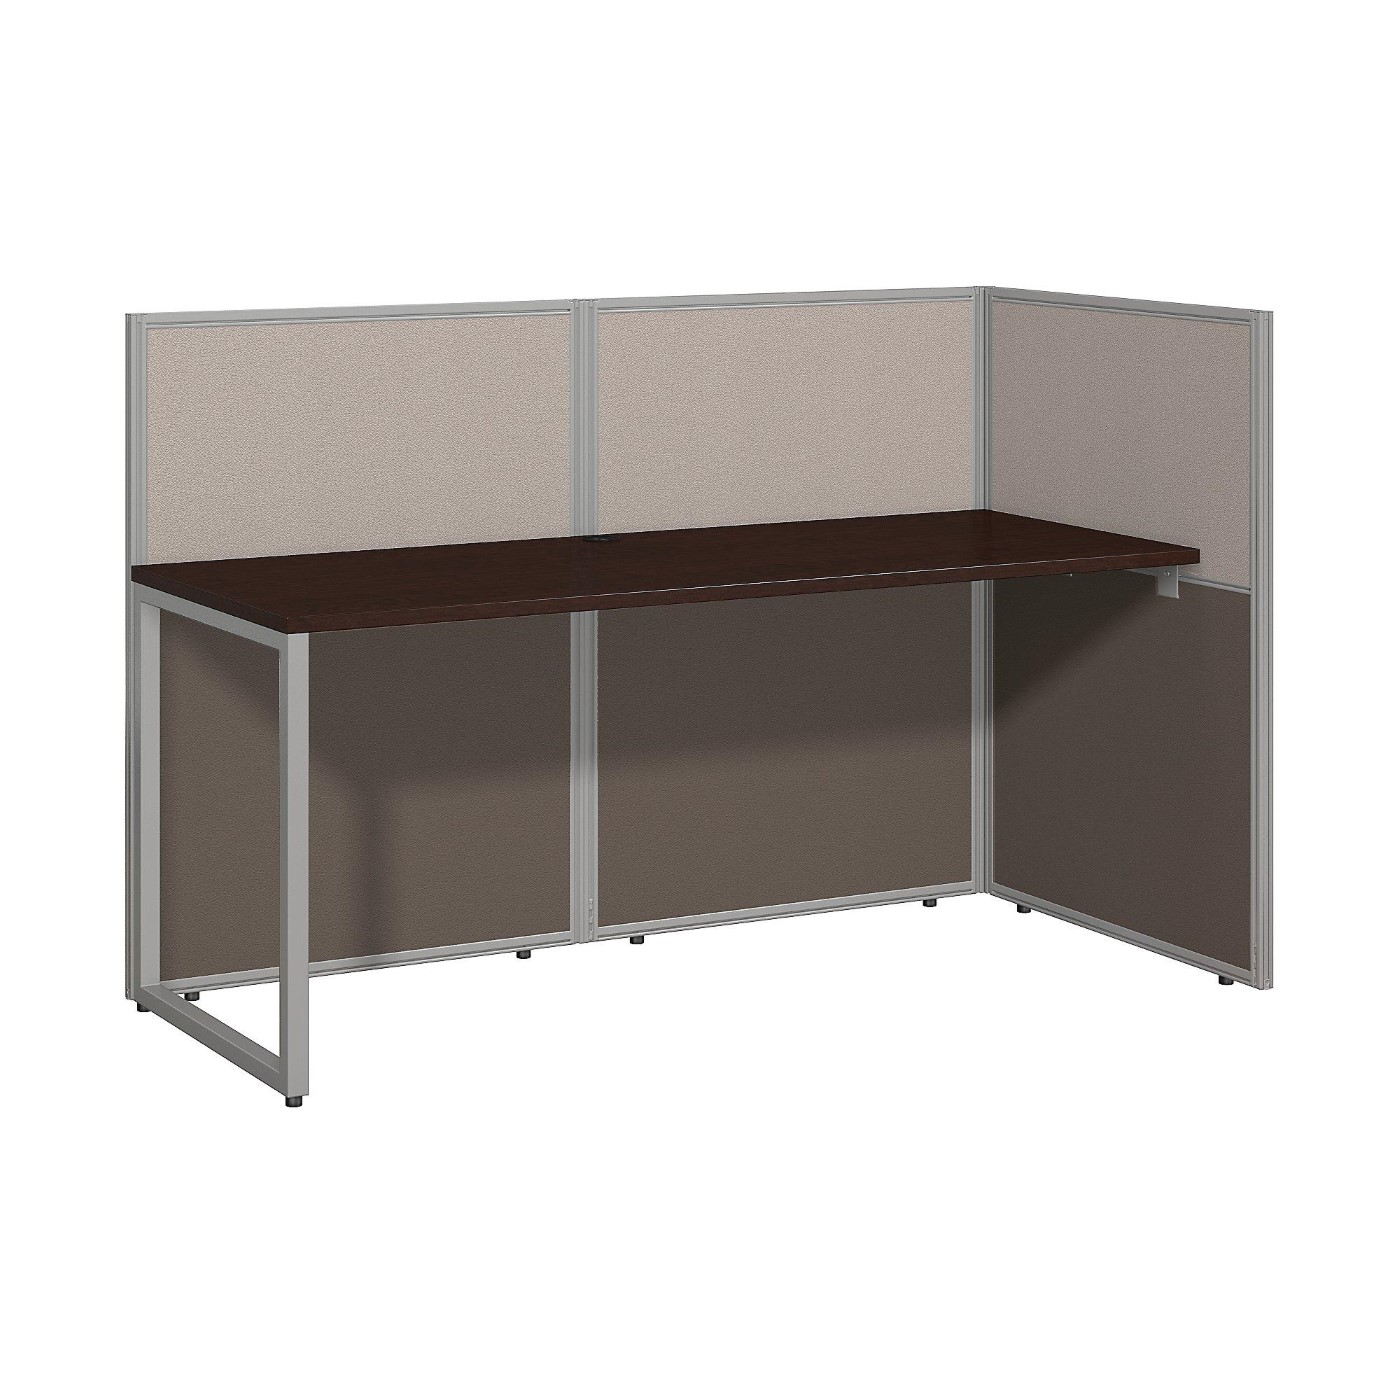 <font color=#c60><b>BUSH BUSINESS FURNITURE EASY OFFICE 60W STRAIGHT DESK OPEN OFFICE. FREE SHIPPING</font></b>